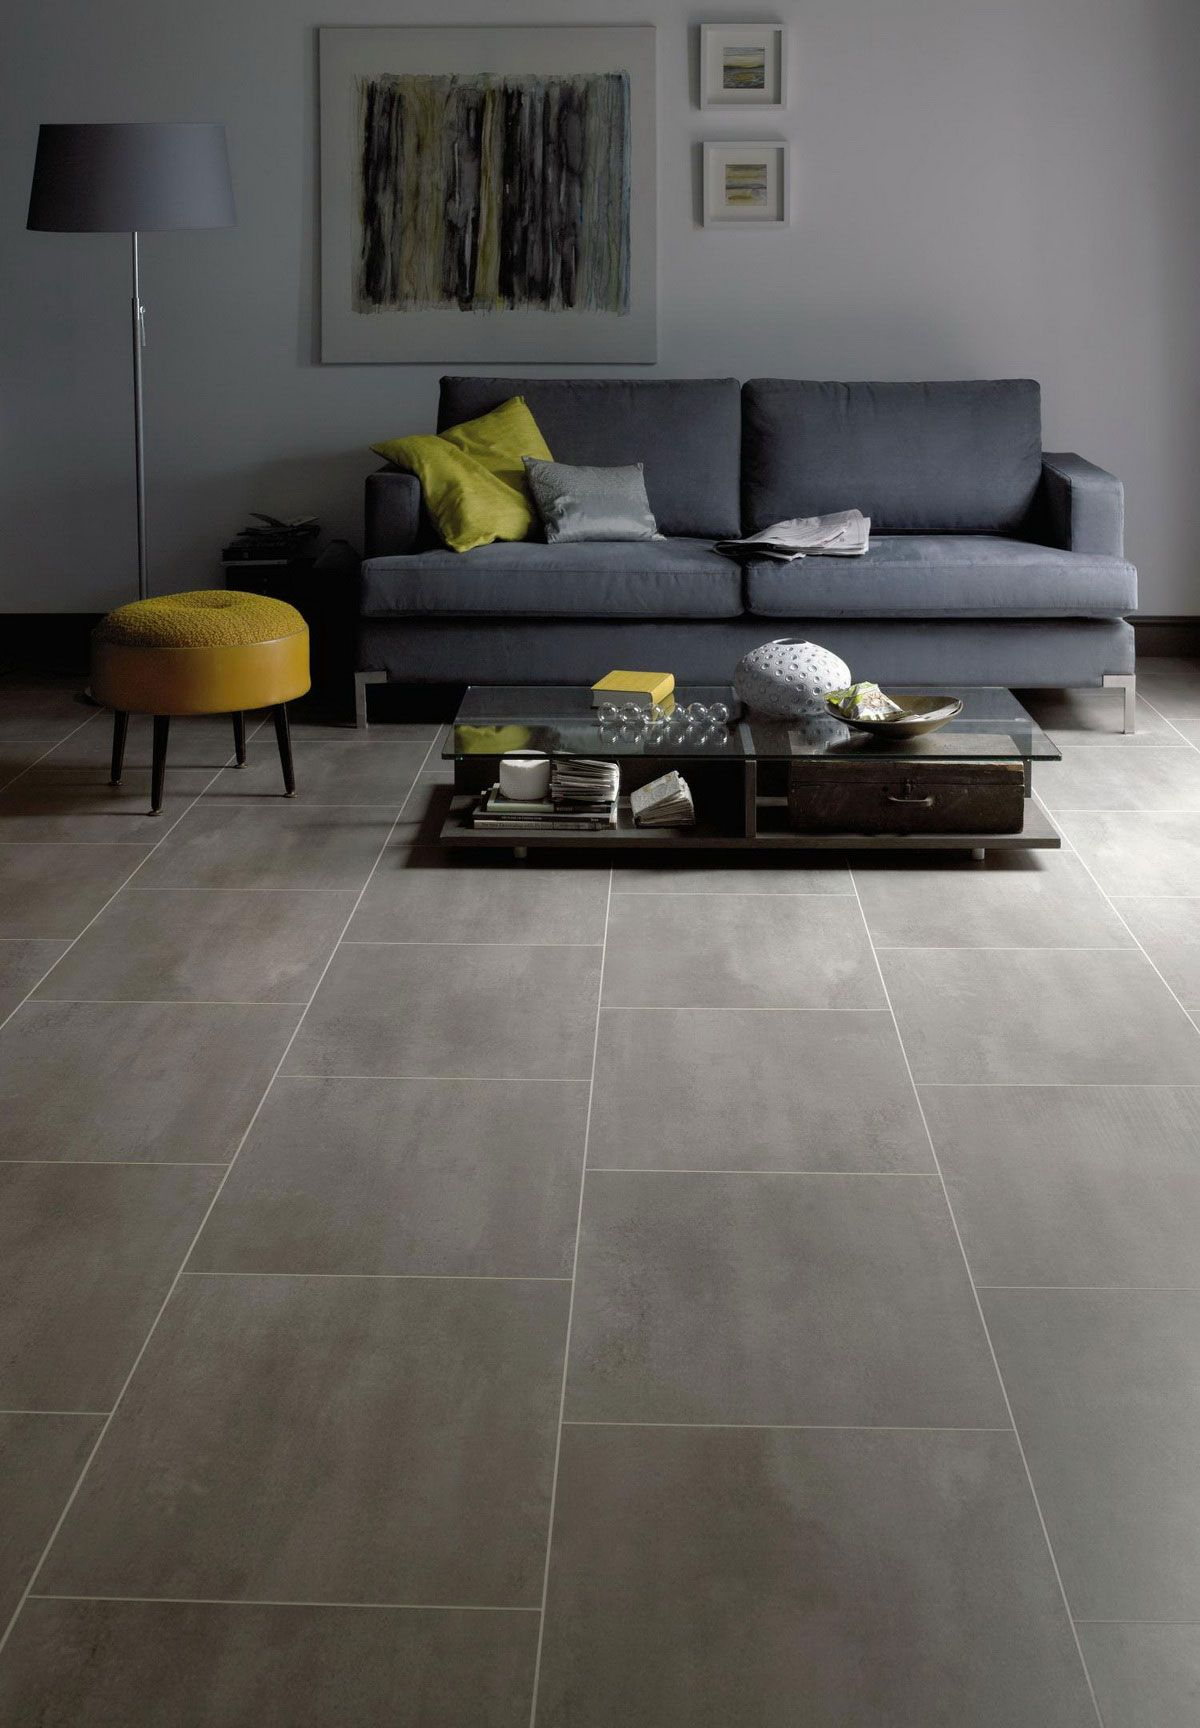 Love This Large Porcelain Tile Flooring Look Using Vinyl Flooring Instead Of